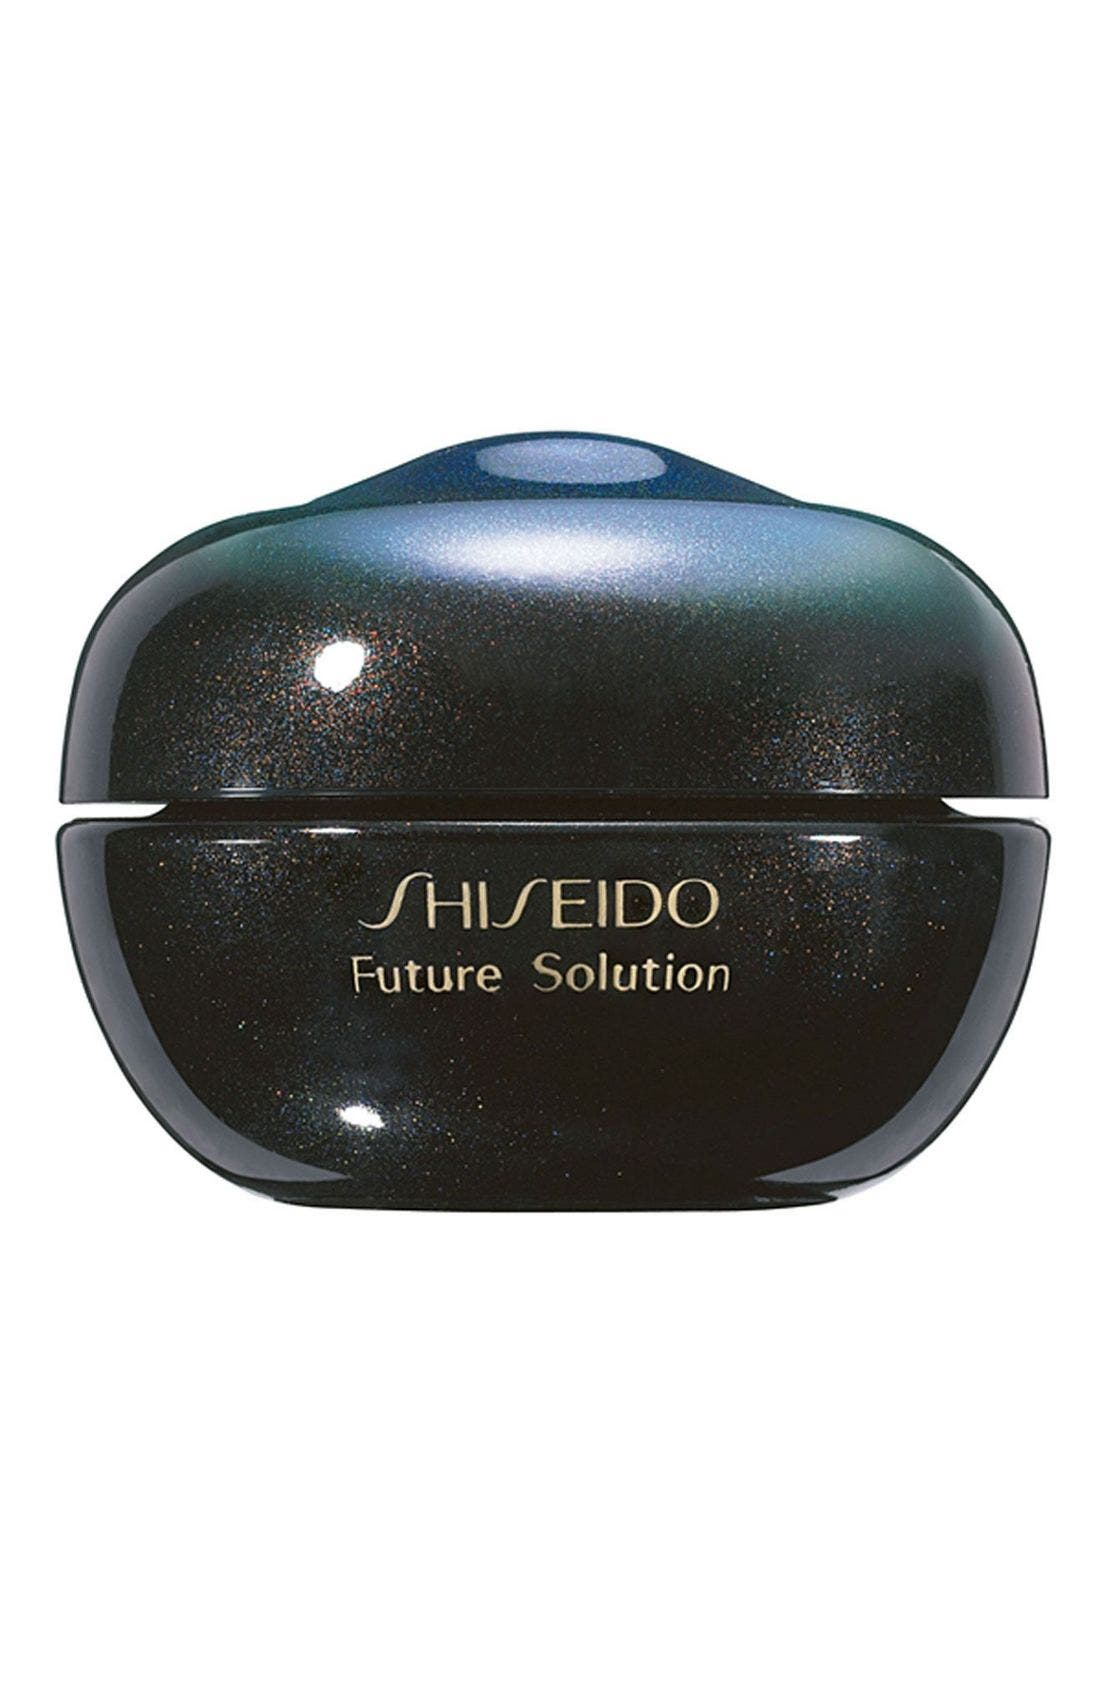 Shiseido 'Future Solution' Total Revitalizing Cream